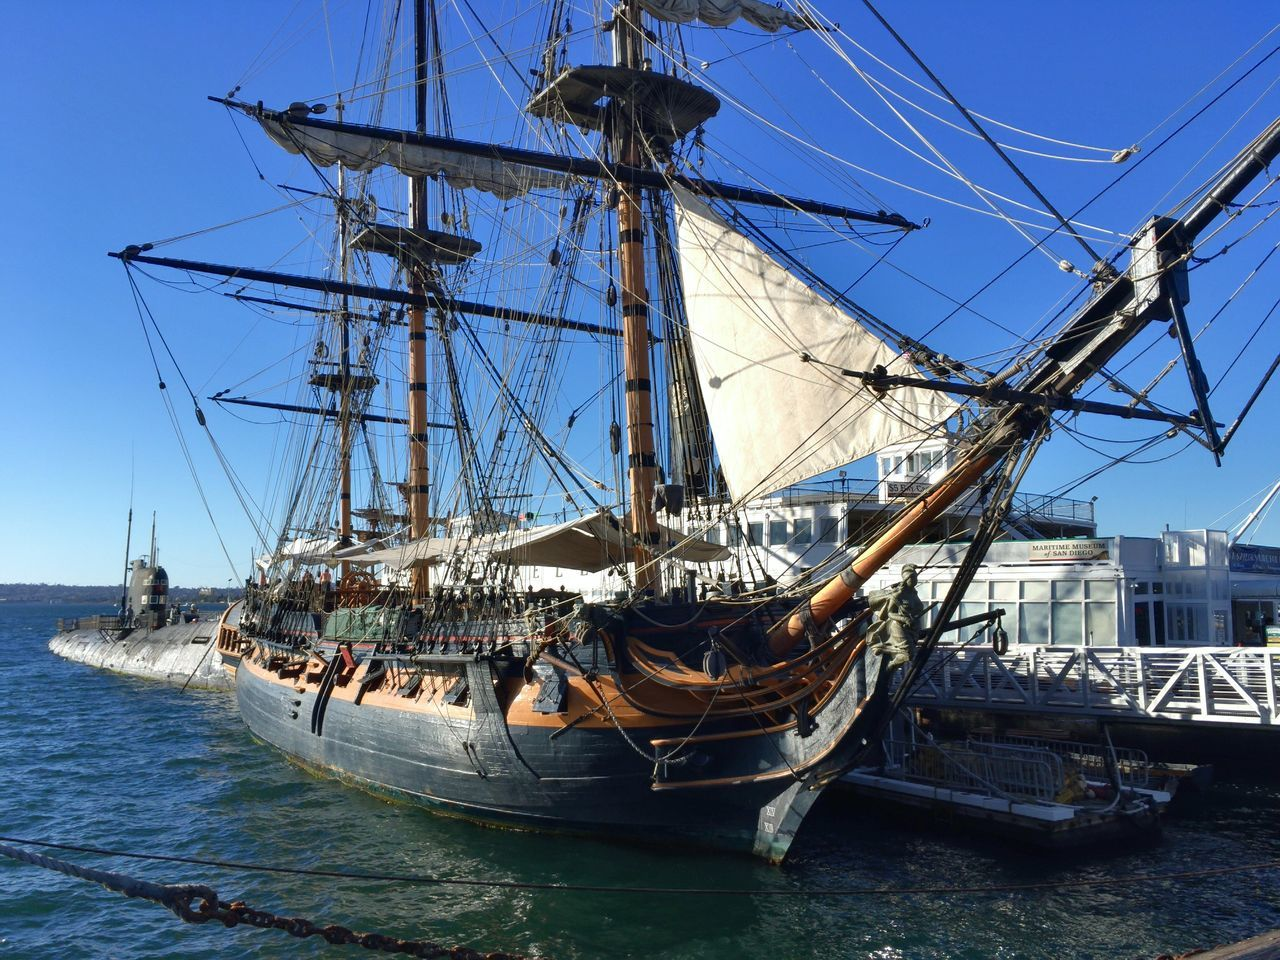 The Star of India - San Diego, United States 2016 Antique Beauty In Nature Clear Sky Day Mast Mode Of Transport Moored Nature Nautical Vessel No People Old Boat Outdoors Rigging Sailboat Sailing Ship Sea Sky Stationary Tall Ship Transportation Water